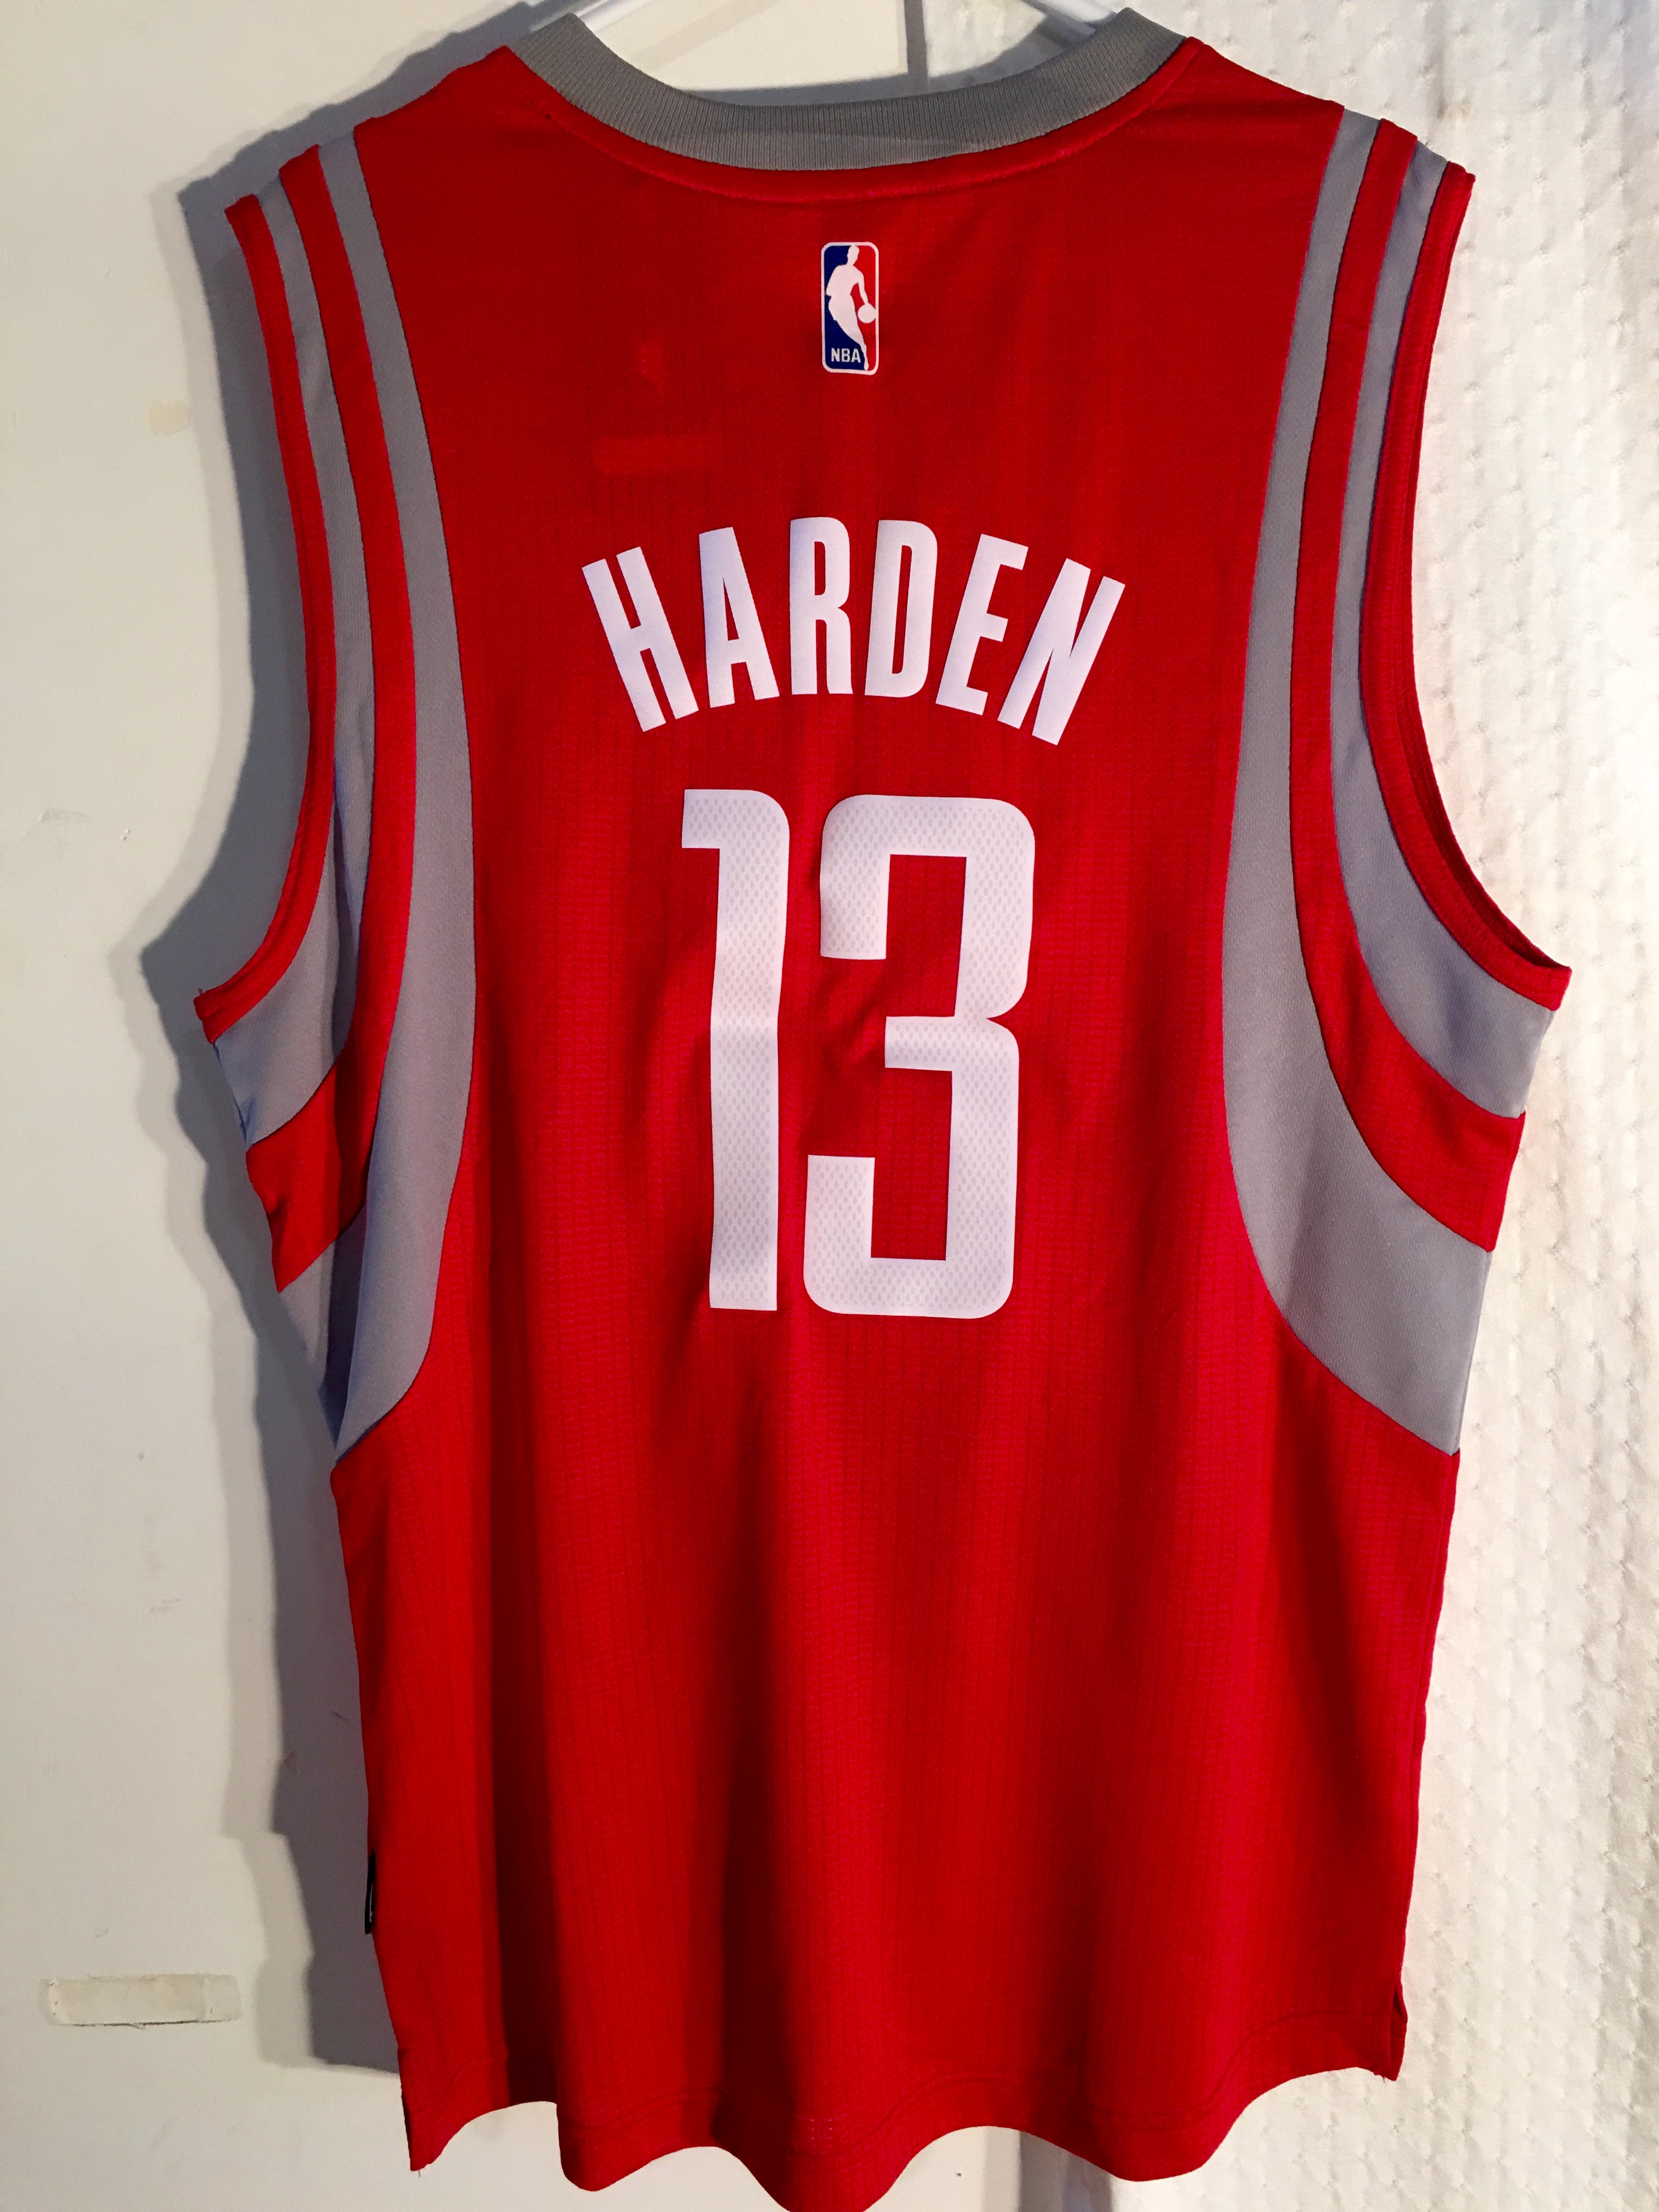 Details about Adidas Swingman 2015 16 Jersey Houston Rockets James Harden Red sz XL